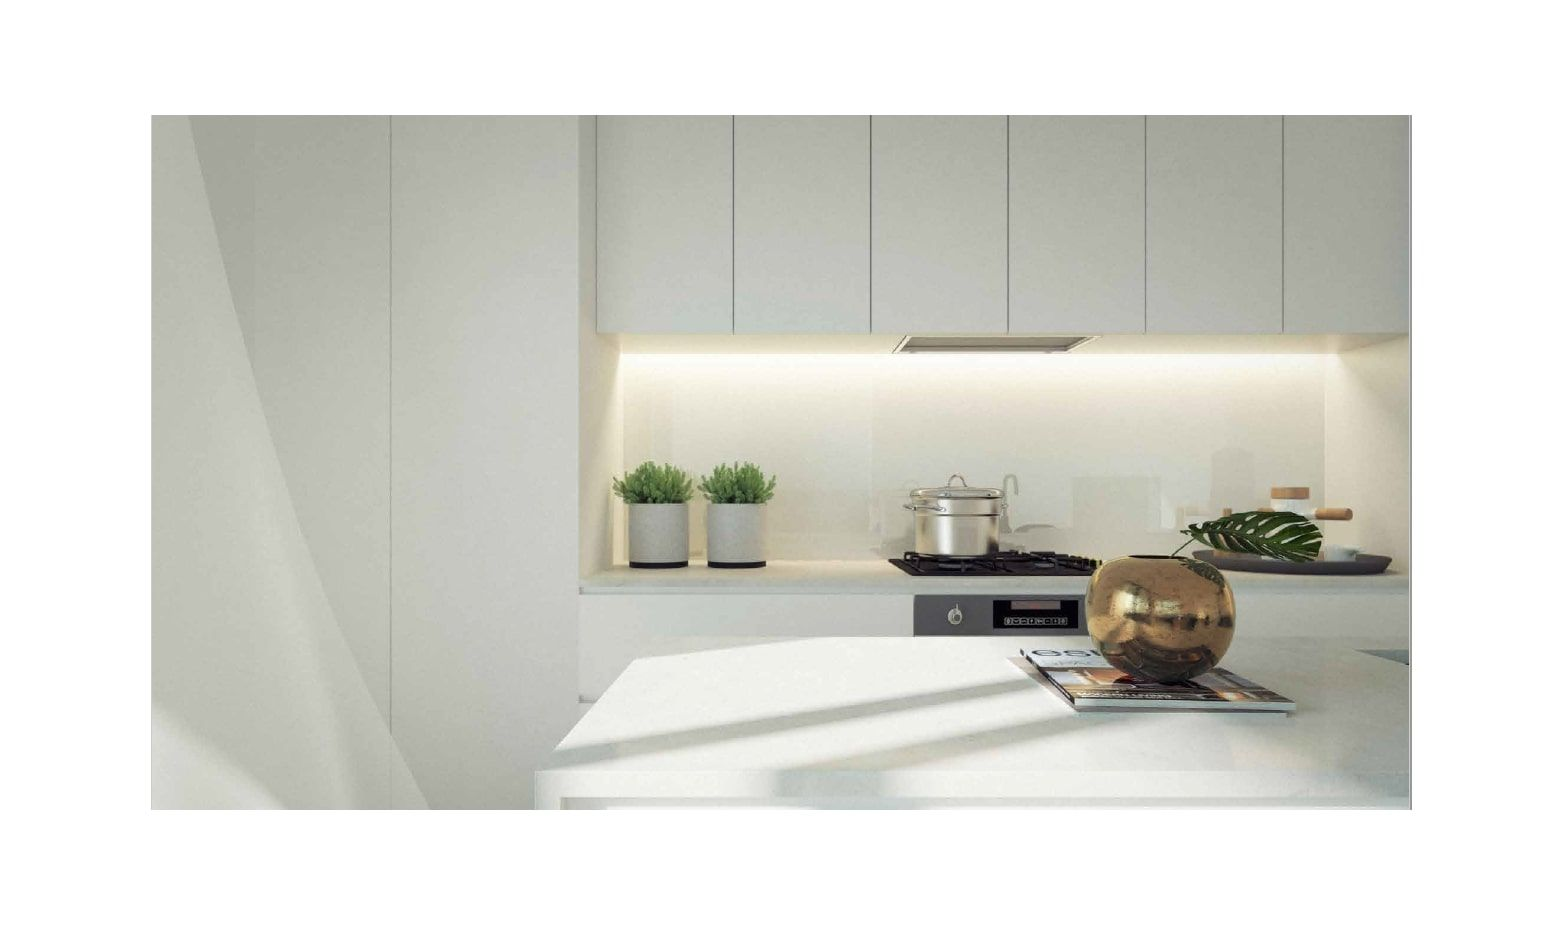 1 bedrooms New Apartments / Off the Plan in  FOOTSCRAY VIC, 3011